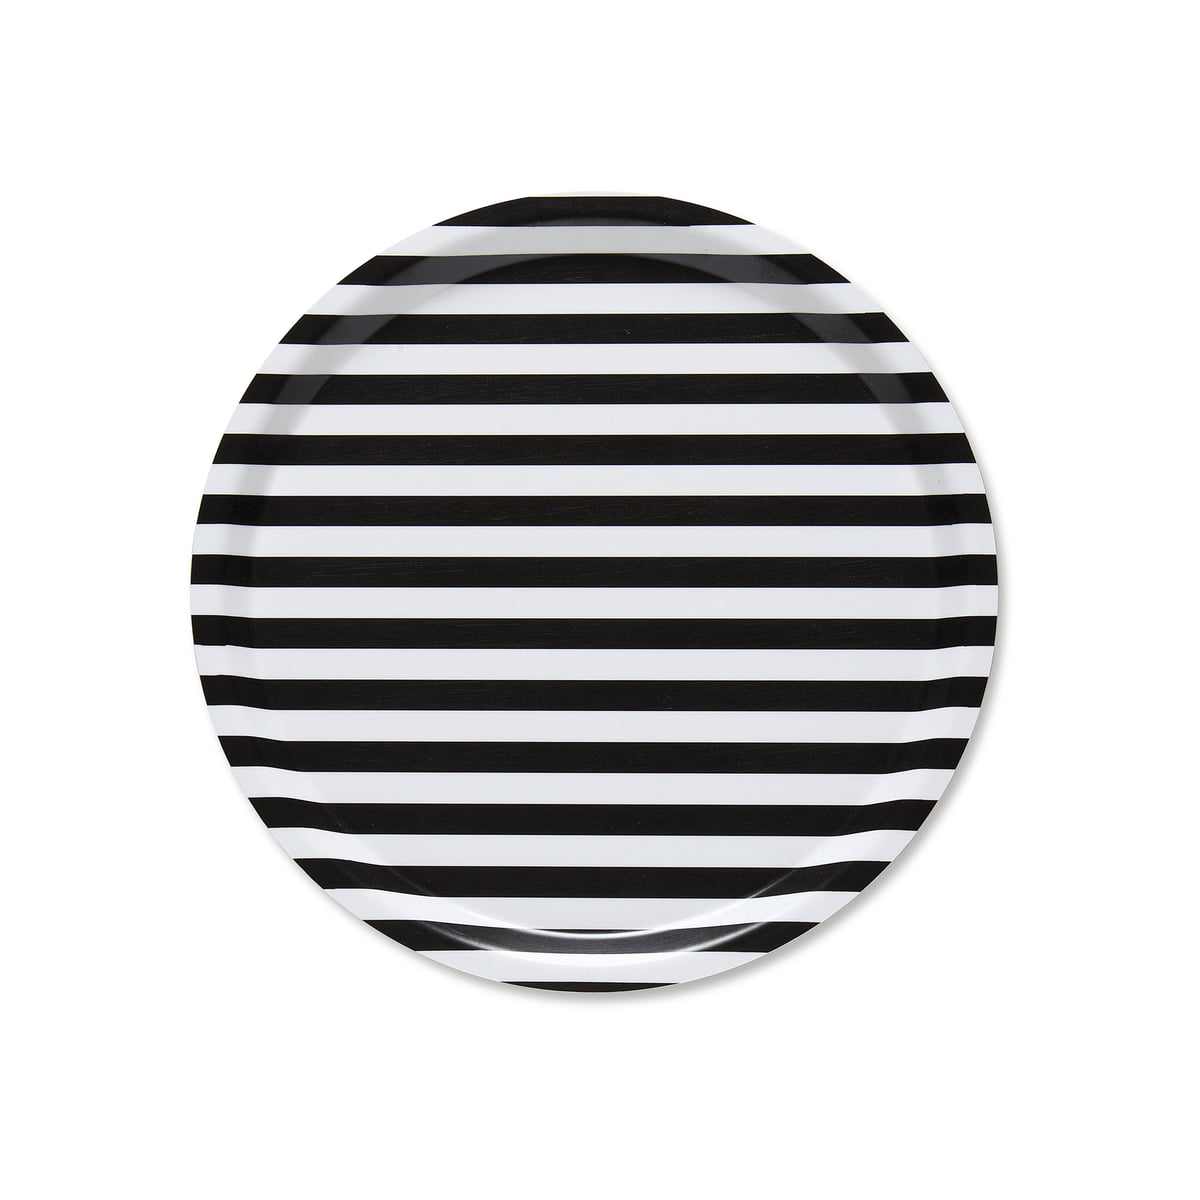 plateau rond avec rayures marimekko. Black Bedroom Furniture Sets. Home Design Ideas